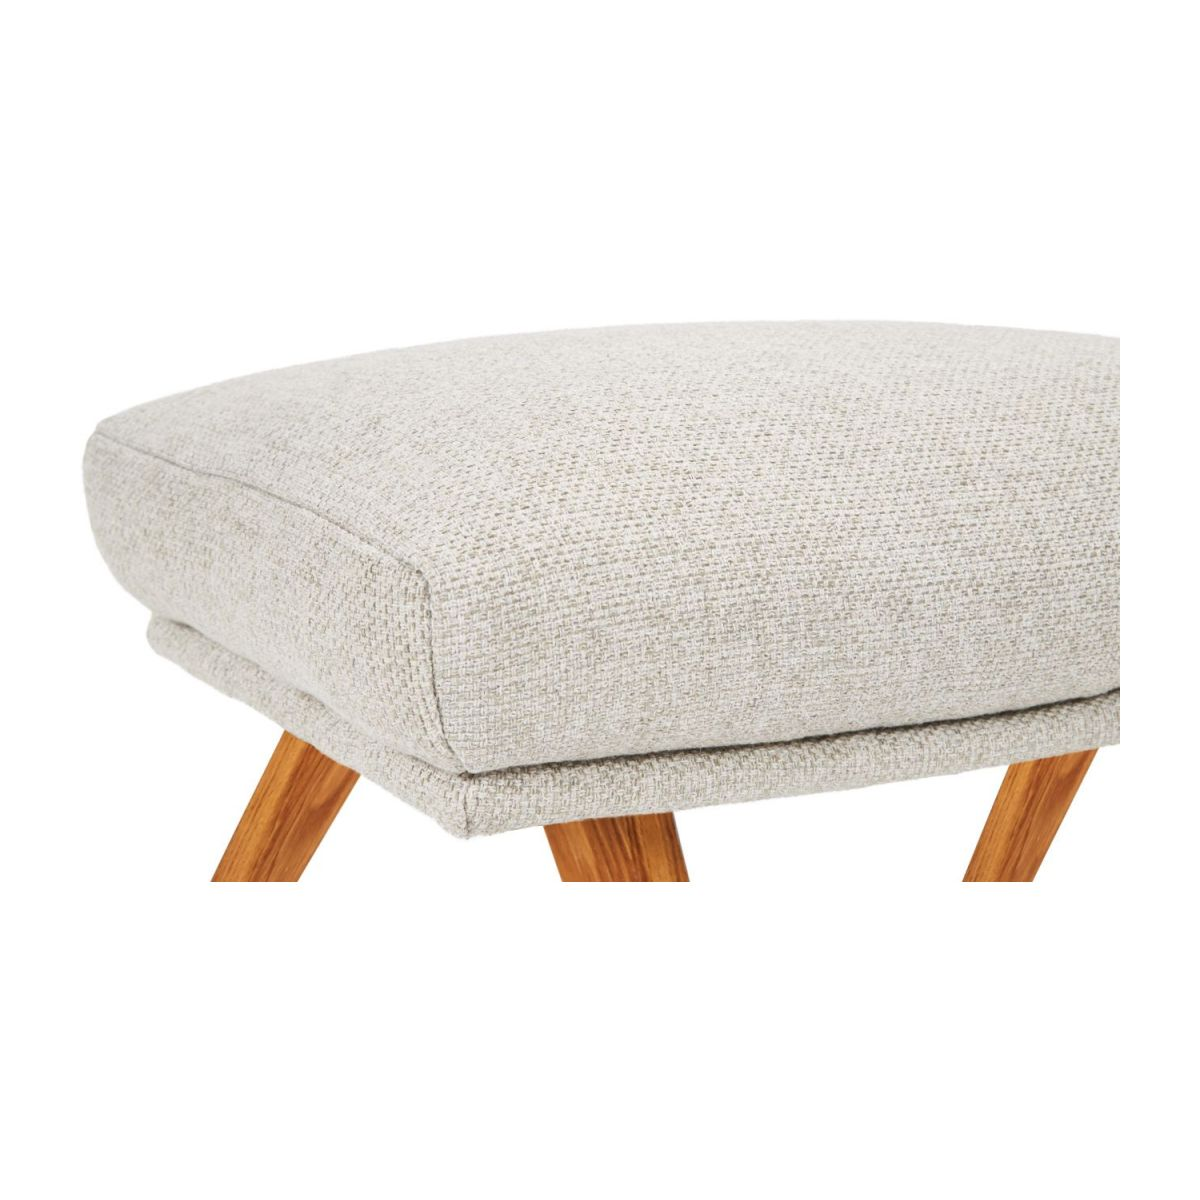 Footstool in Lecce fabric, nature with oak legs n°5